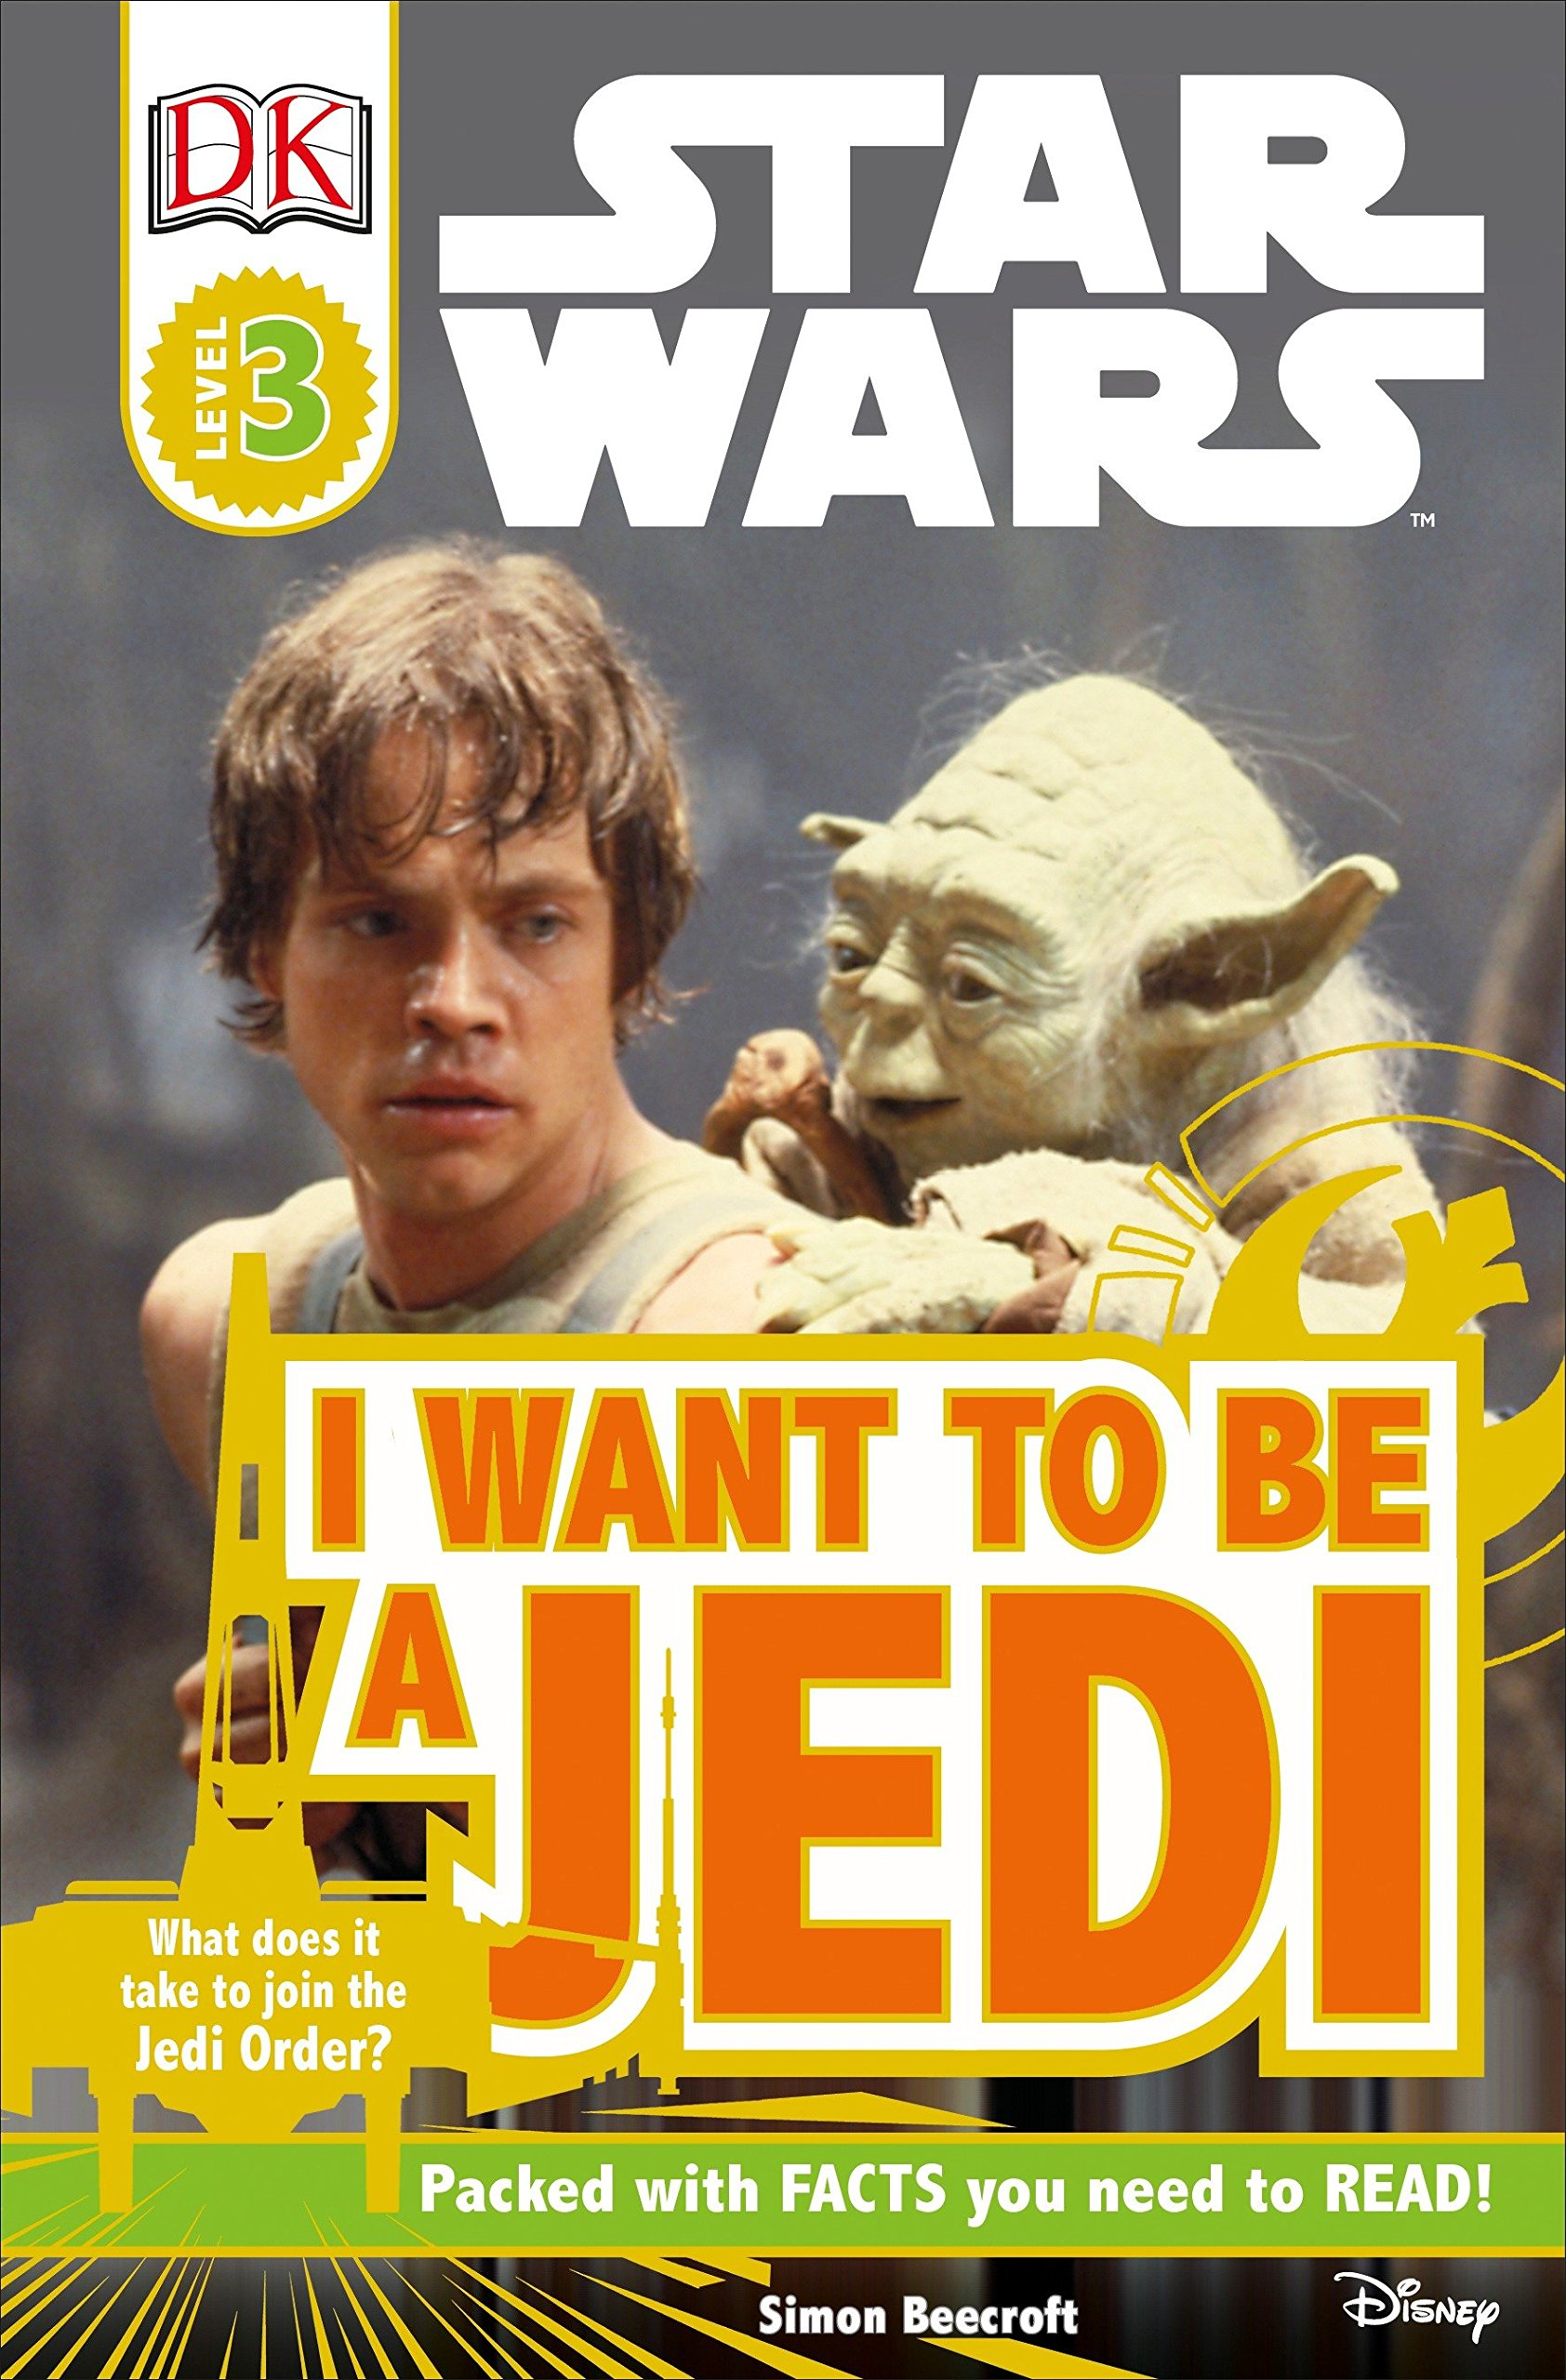 DK Readers L3: Star Wars: I Want To Be A Jedi: What Does It Take to Join the Jedi Order? (DK Readers Level 3) pdf